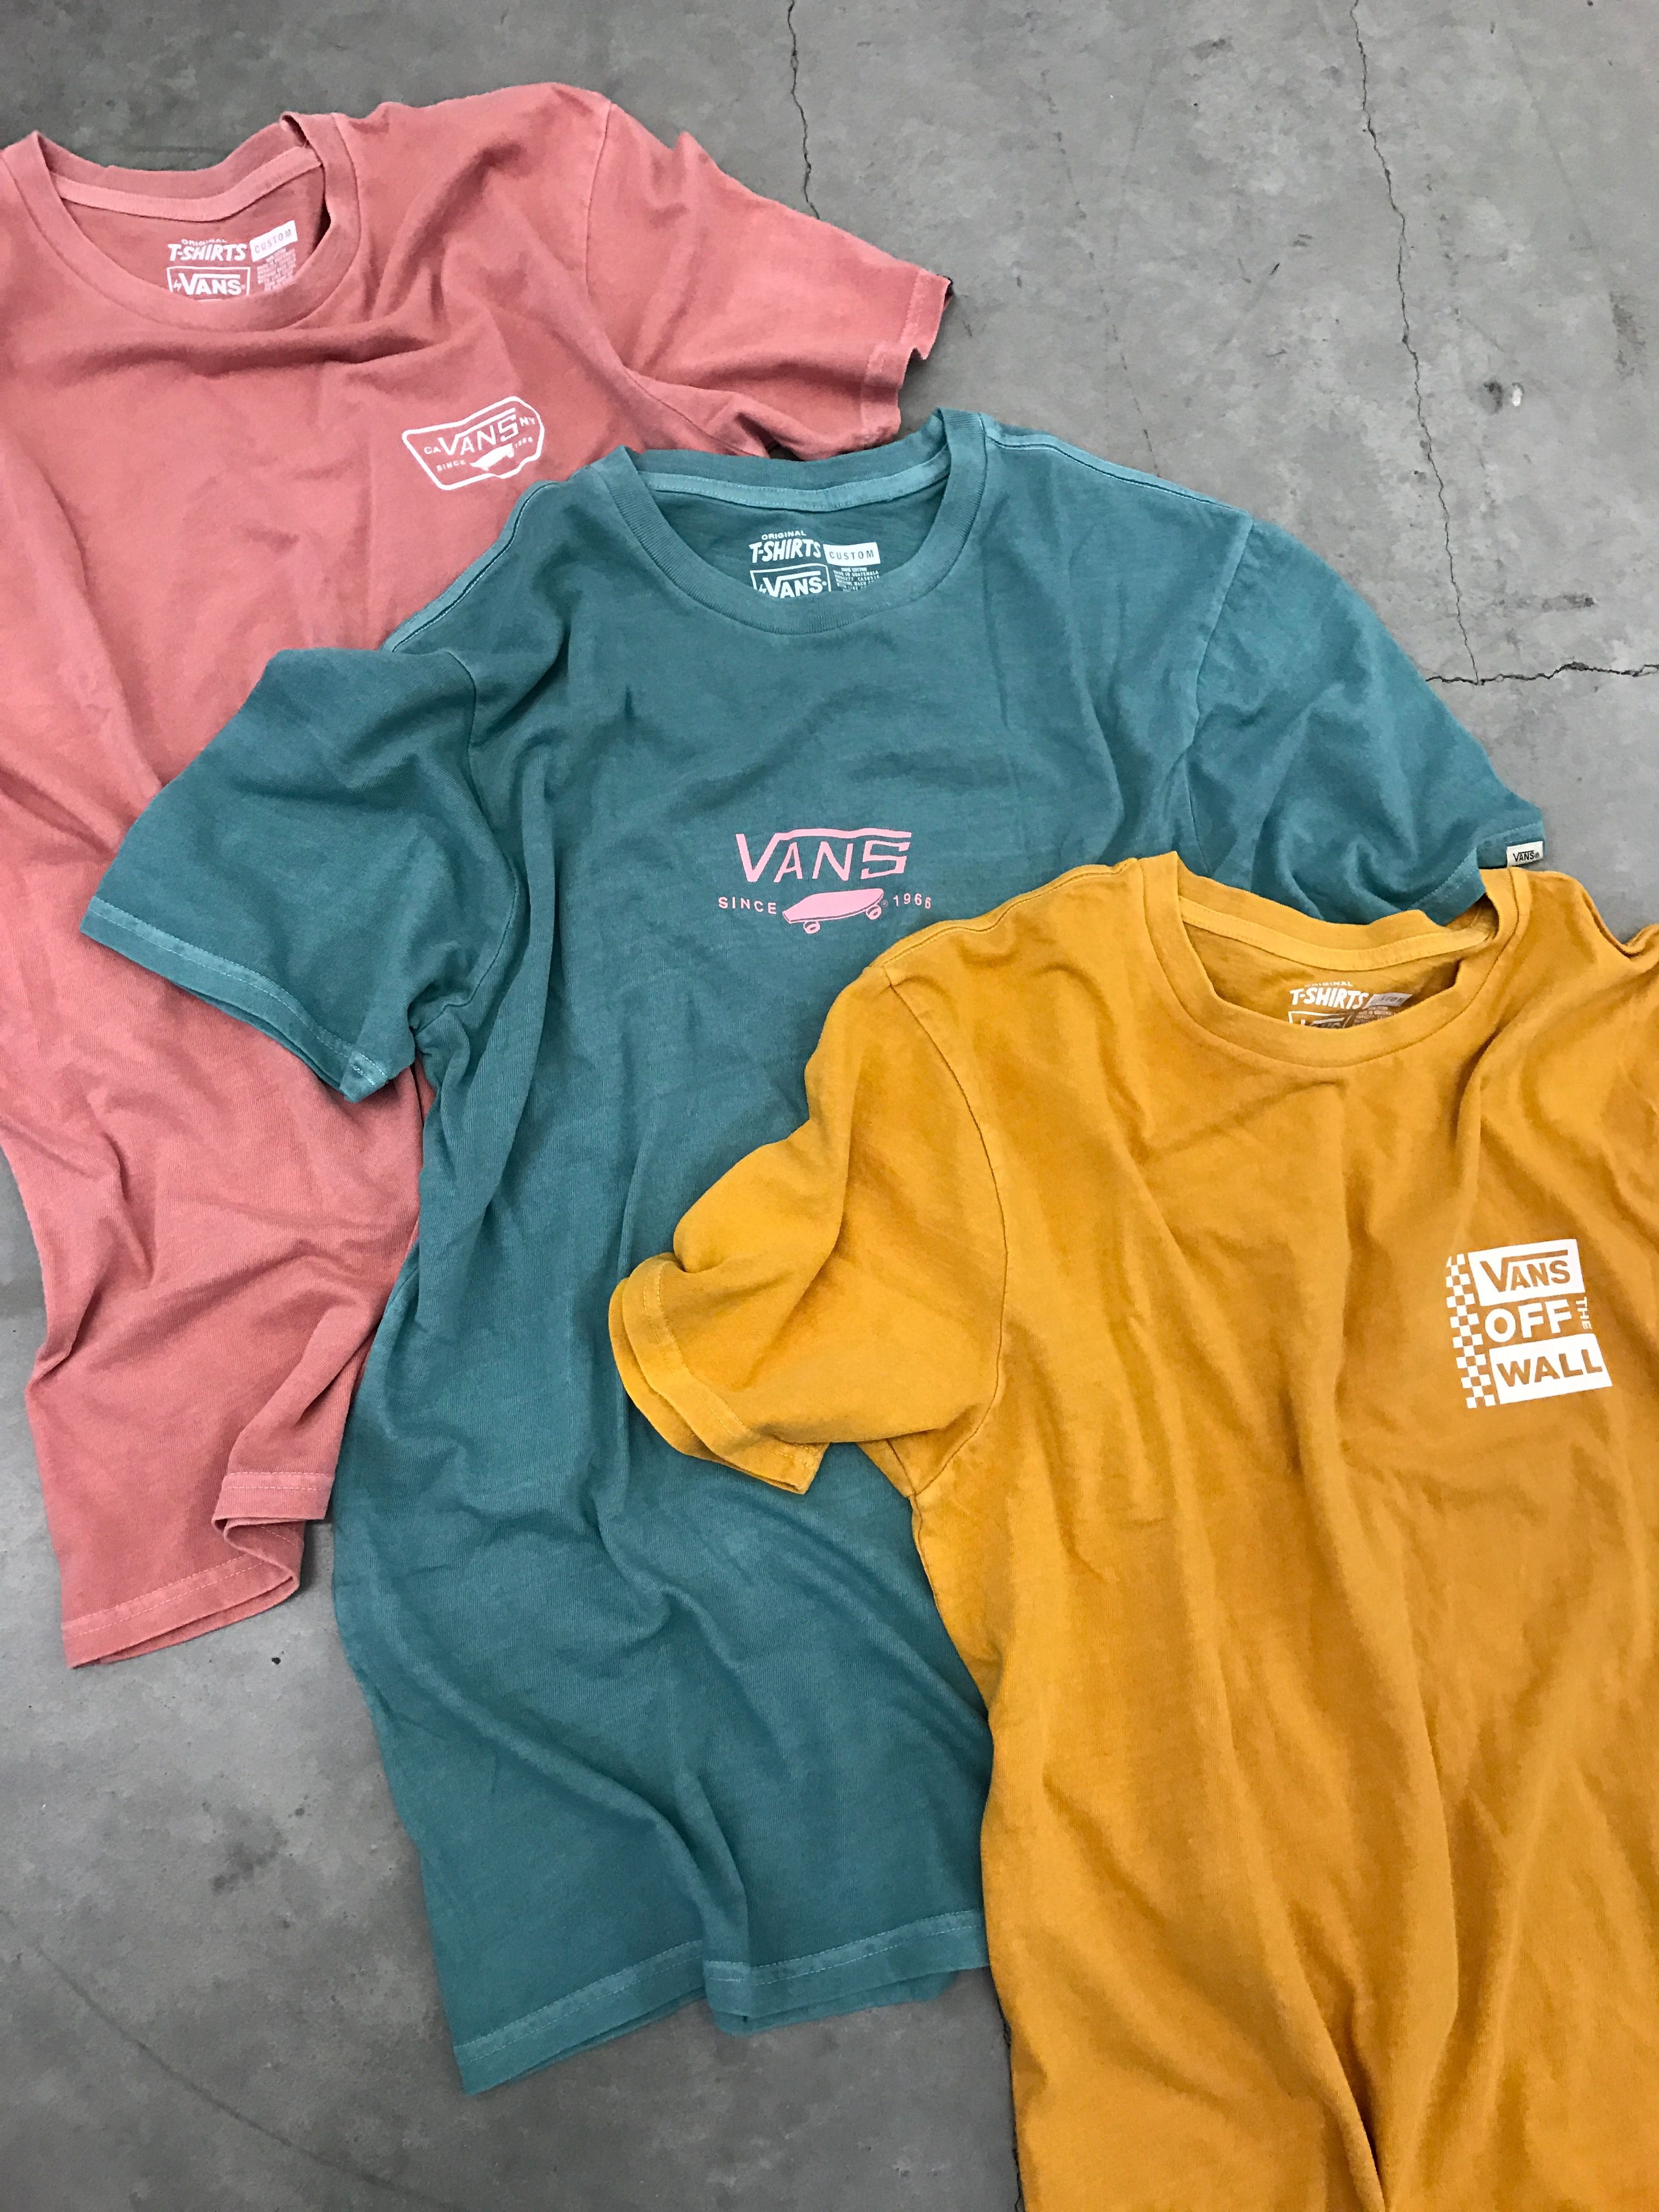 b526ccc7892c Vans Pigment Tees | vans in 2019 | Fashion, Outfits, Clothes